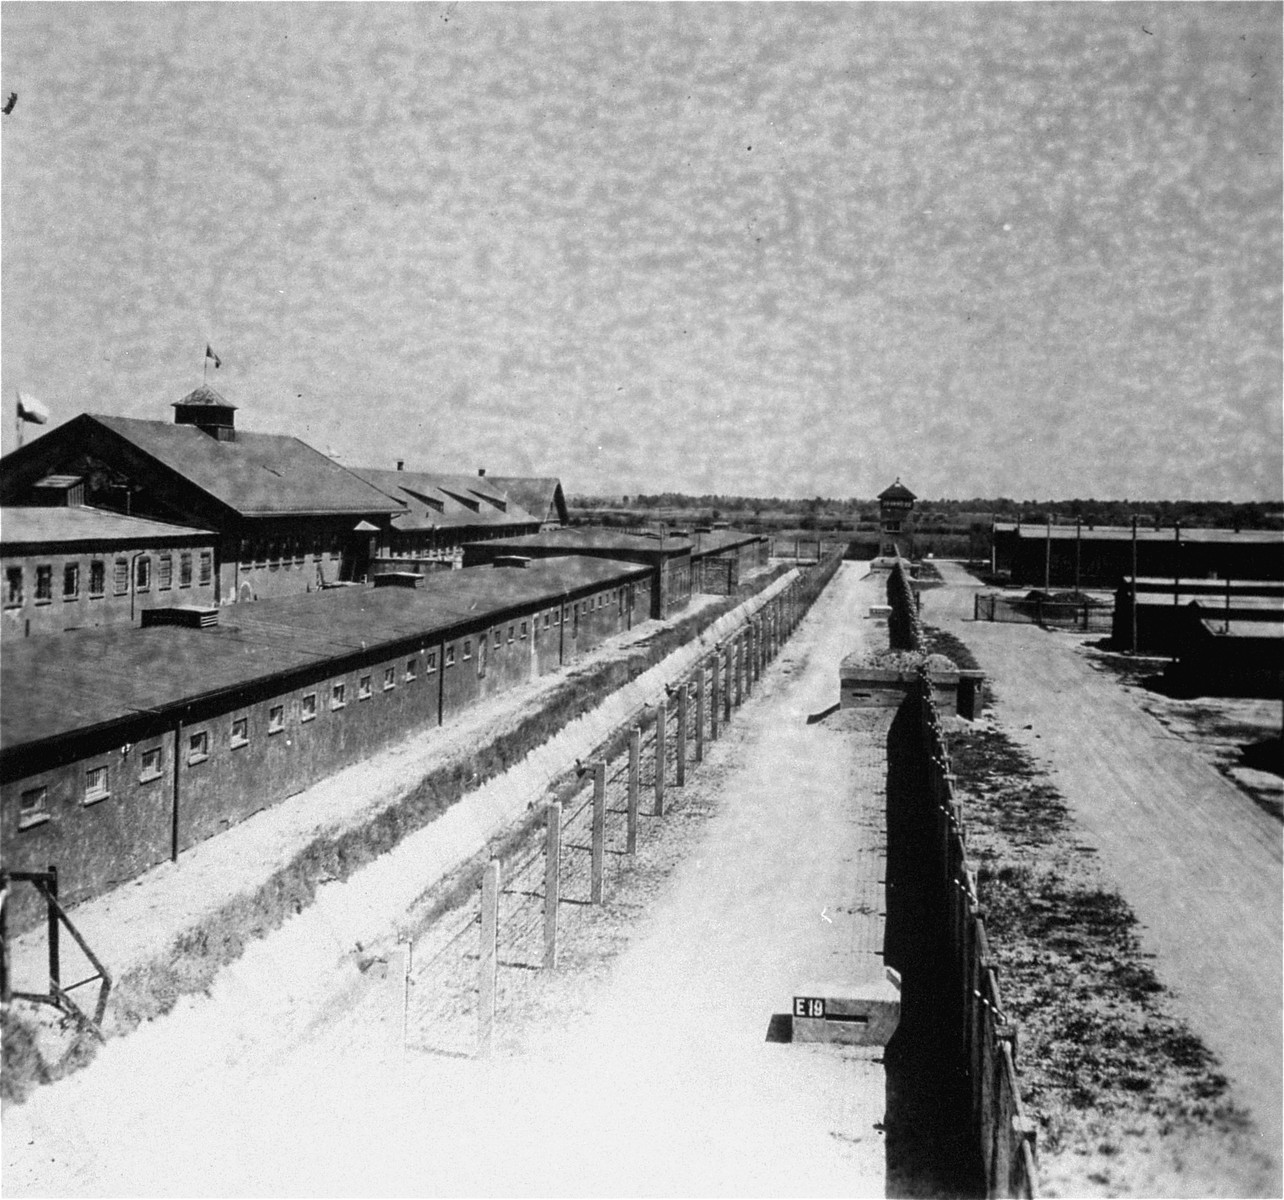 A section of the perimeter of the Dachau concentration camp that separated the camp proper from the factories where prisoners labored.